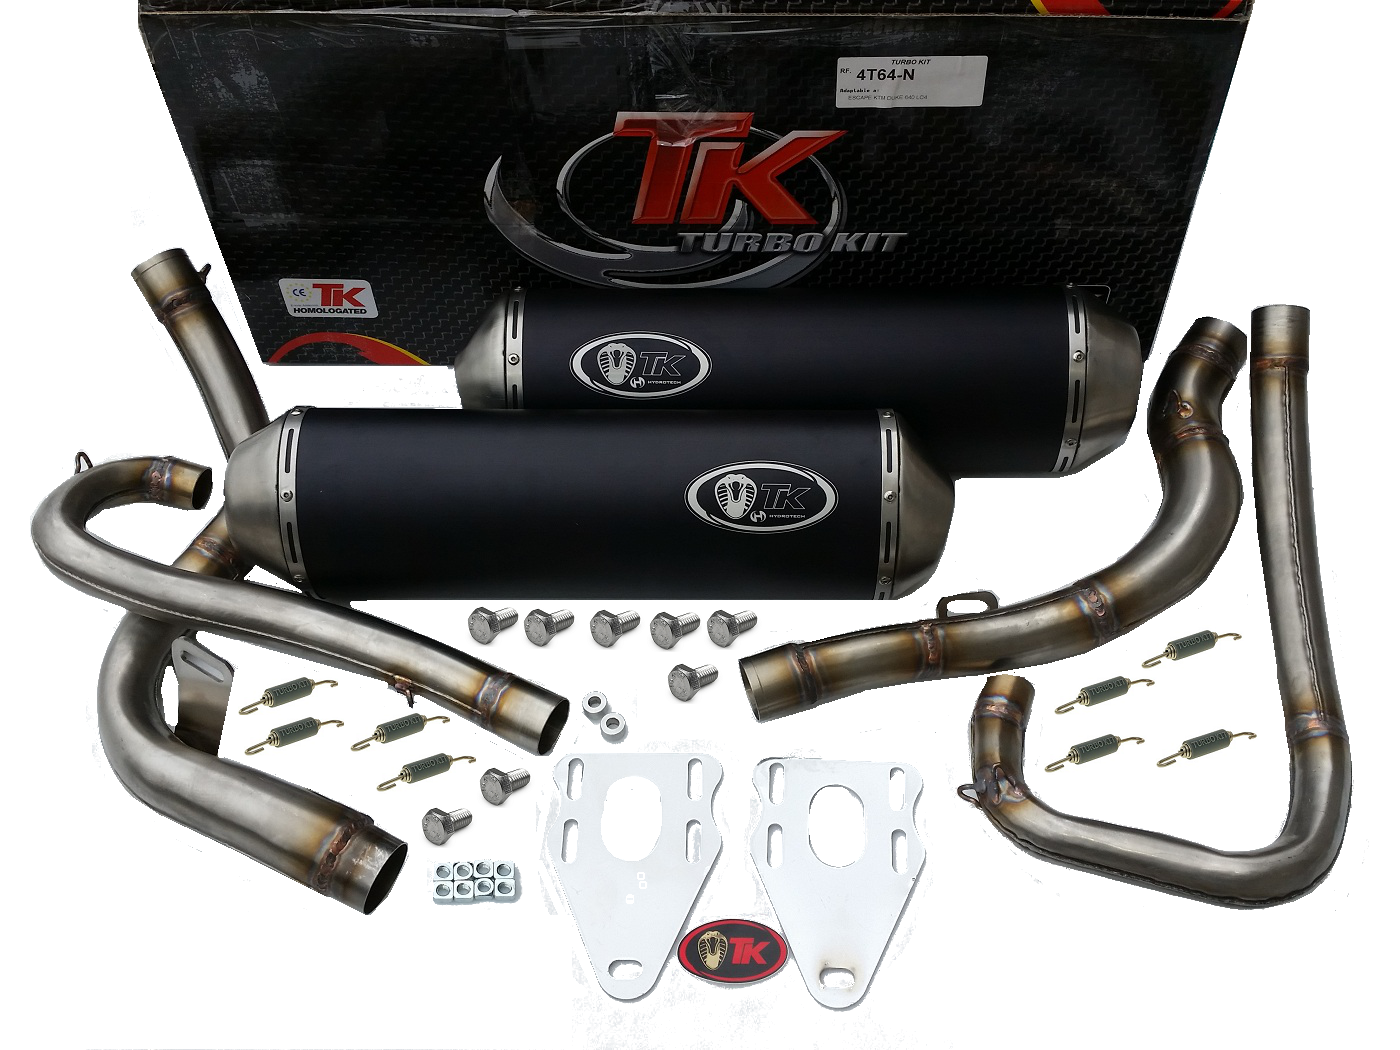 auspuff turbokit sport edelstahl double ktm duke 640 lc4 00 07 4t scooter roller teile. Black Bedroom Furniture Sets. Home Design Ideas